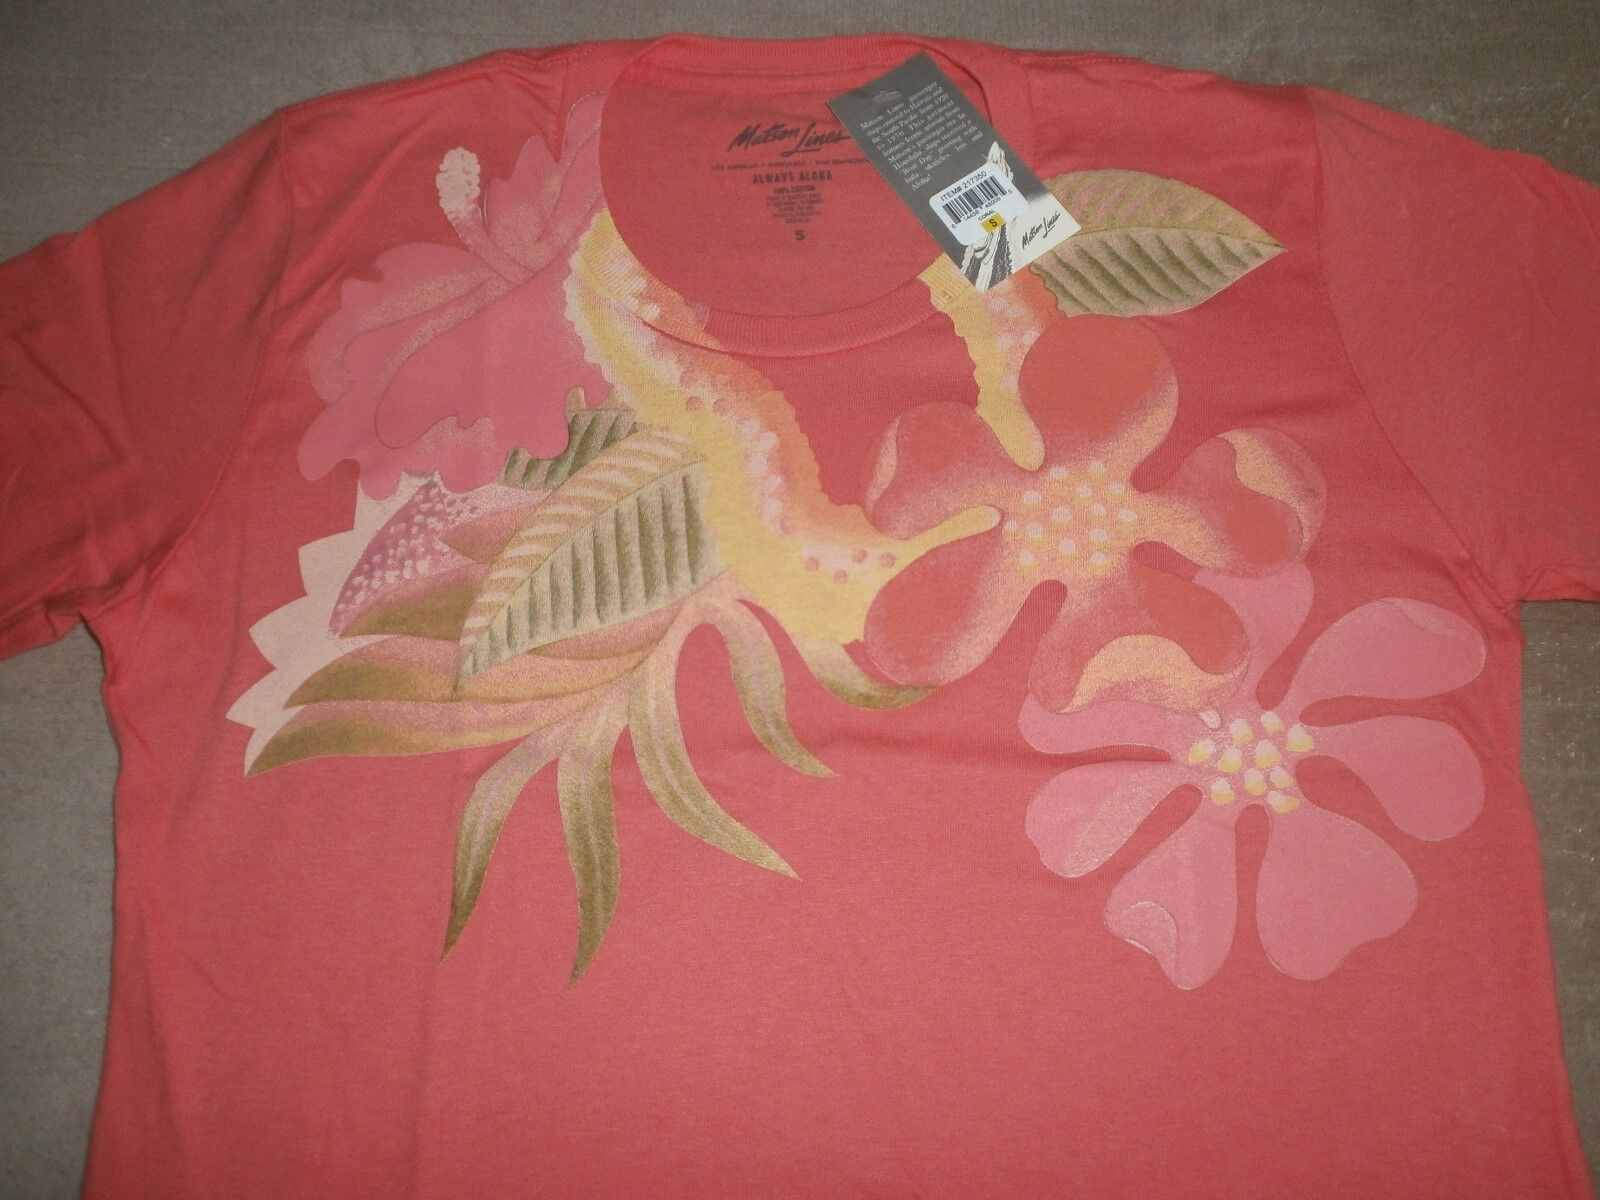 6 MATSON LINES LADIES FLORAL PRINT 100% SOFT COTTON T-SHIRTS  AS REQUESTED